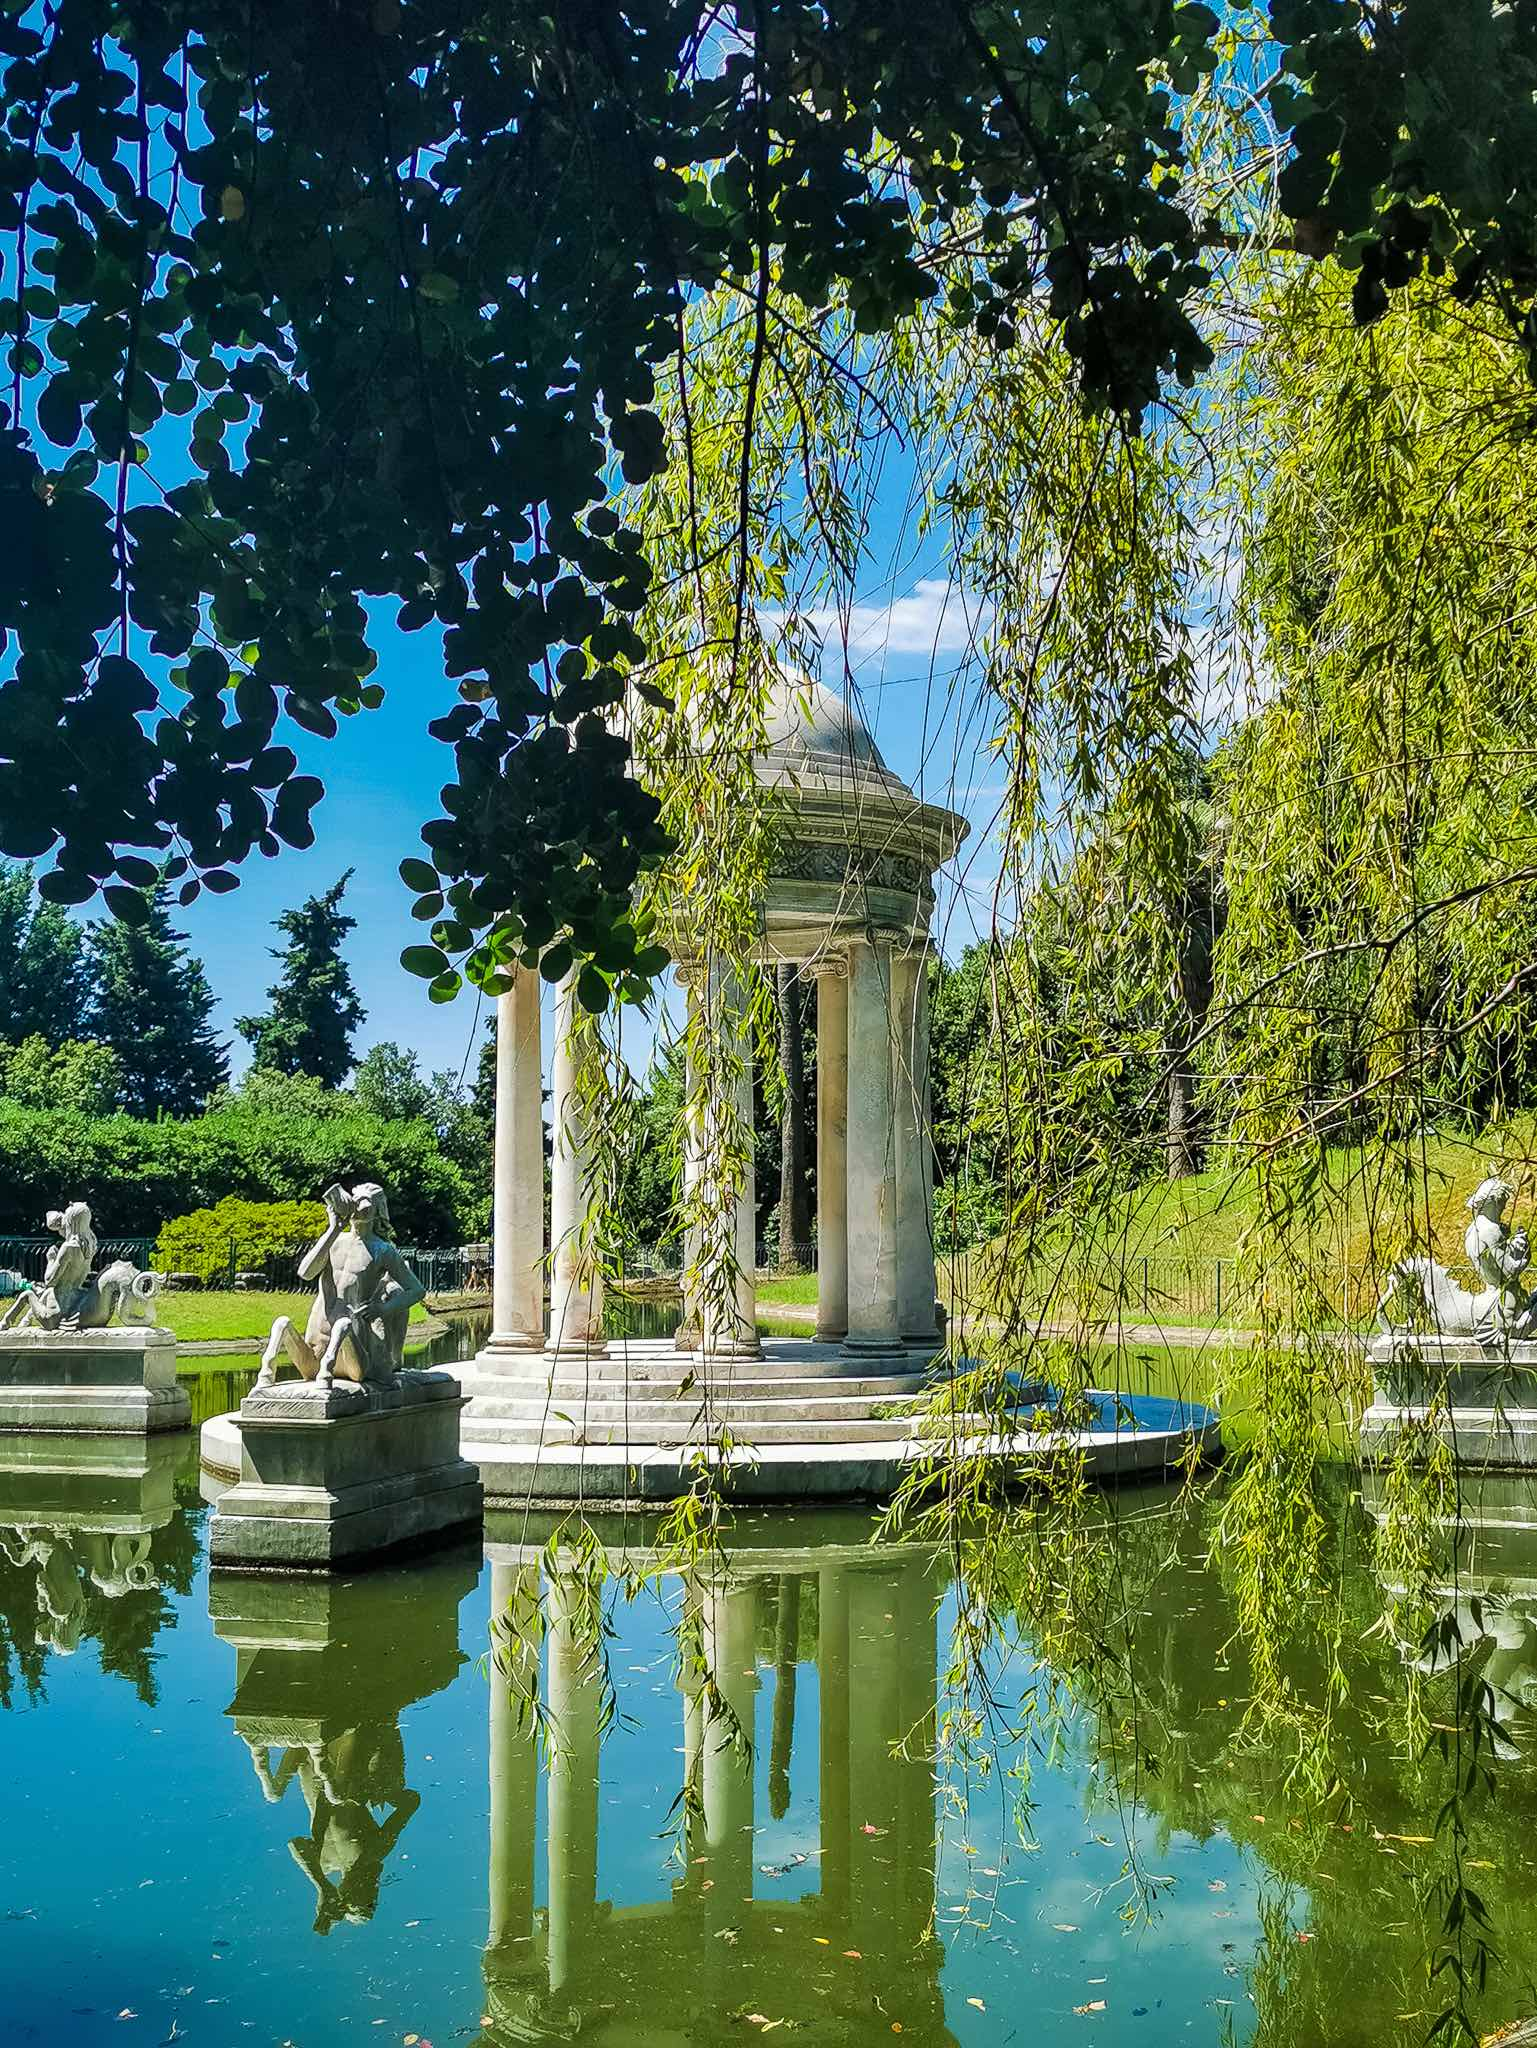 The Big Lake with the Temple of Diana in the park of Villa Durazzo Pallavicini at Pegli, on the outskirts of Genoa